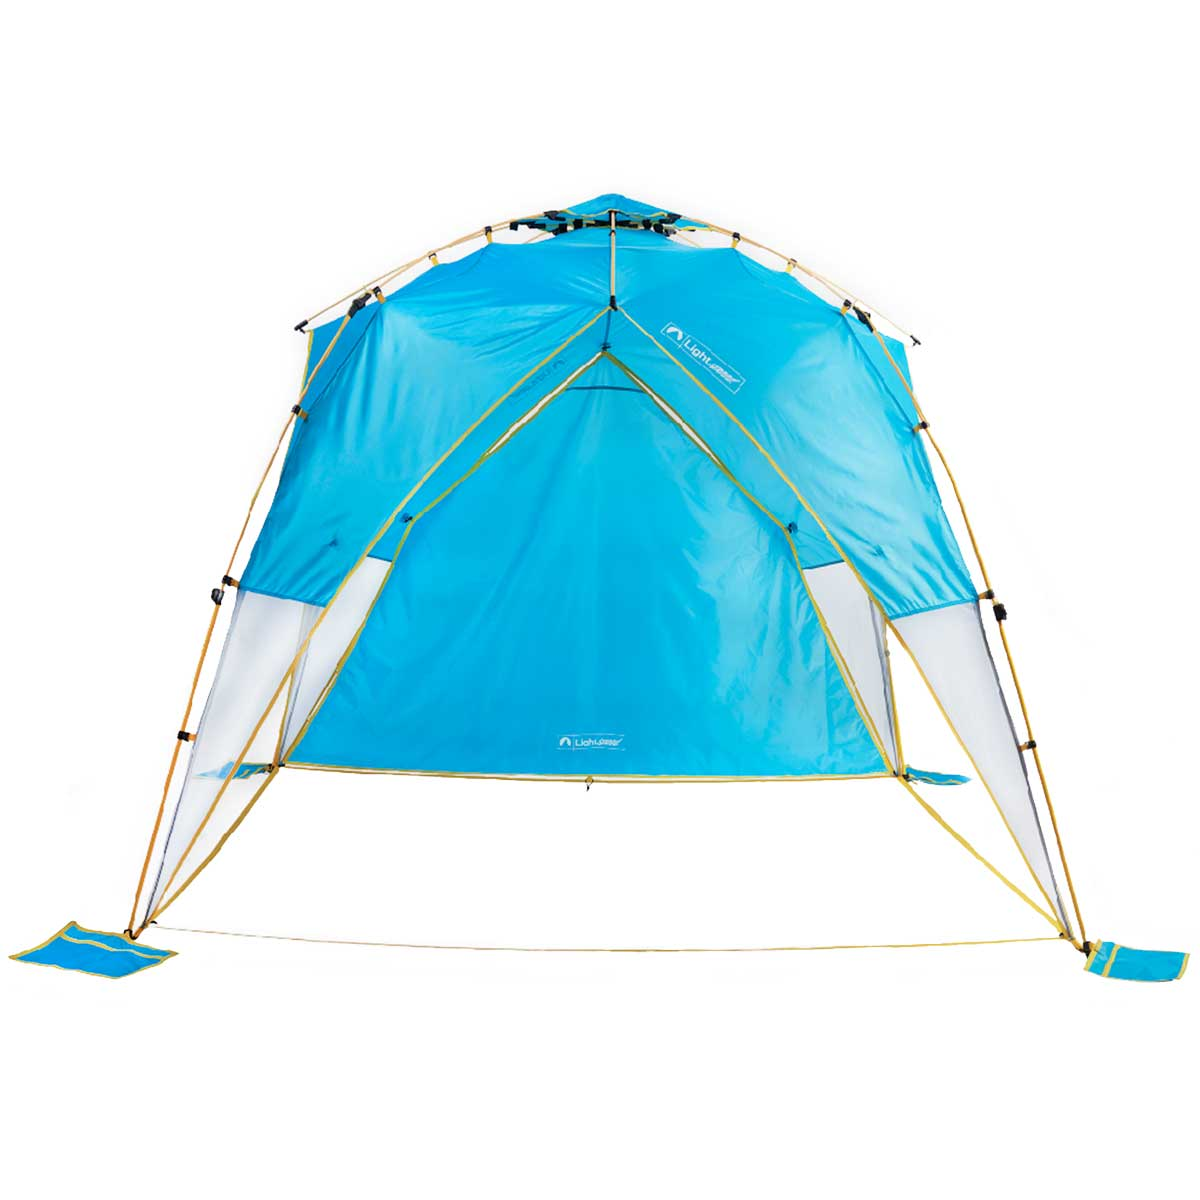 Tall canopy with shade wall and no floor in light blue and yellow trim - shown with detachable sand pockets.